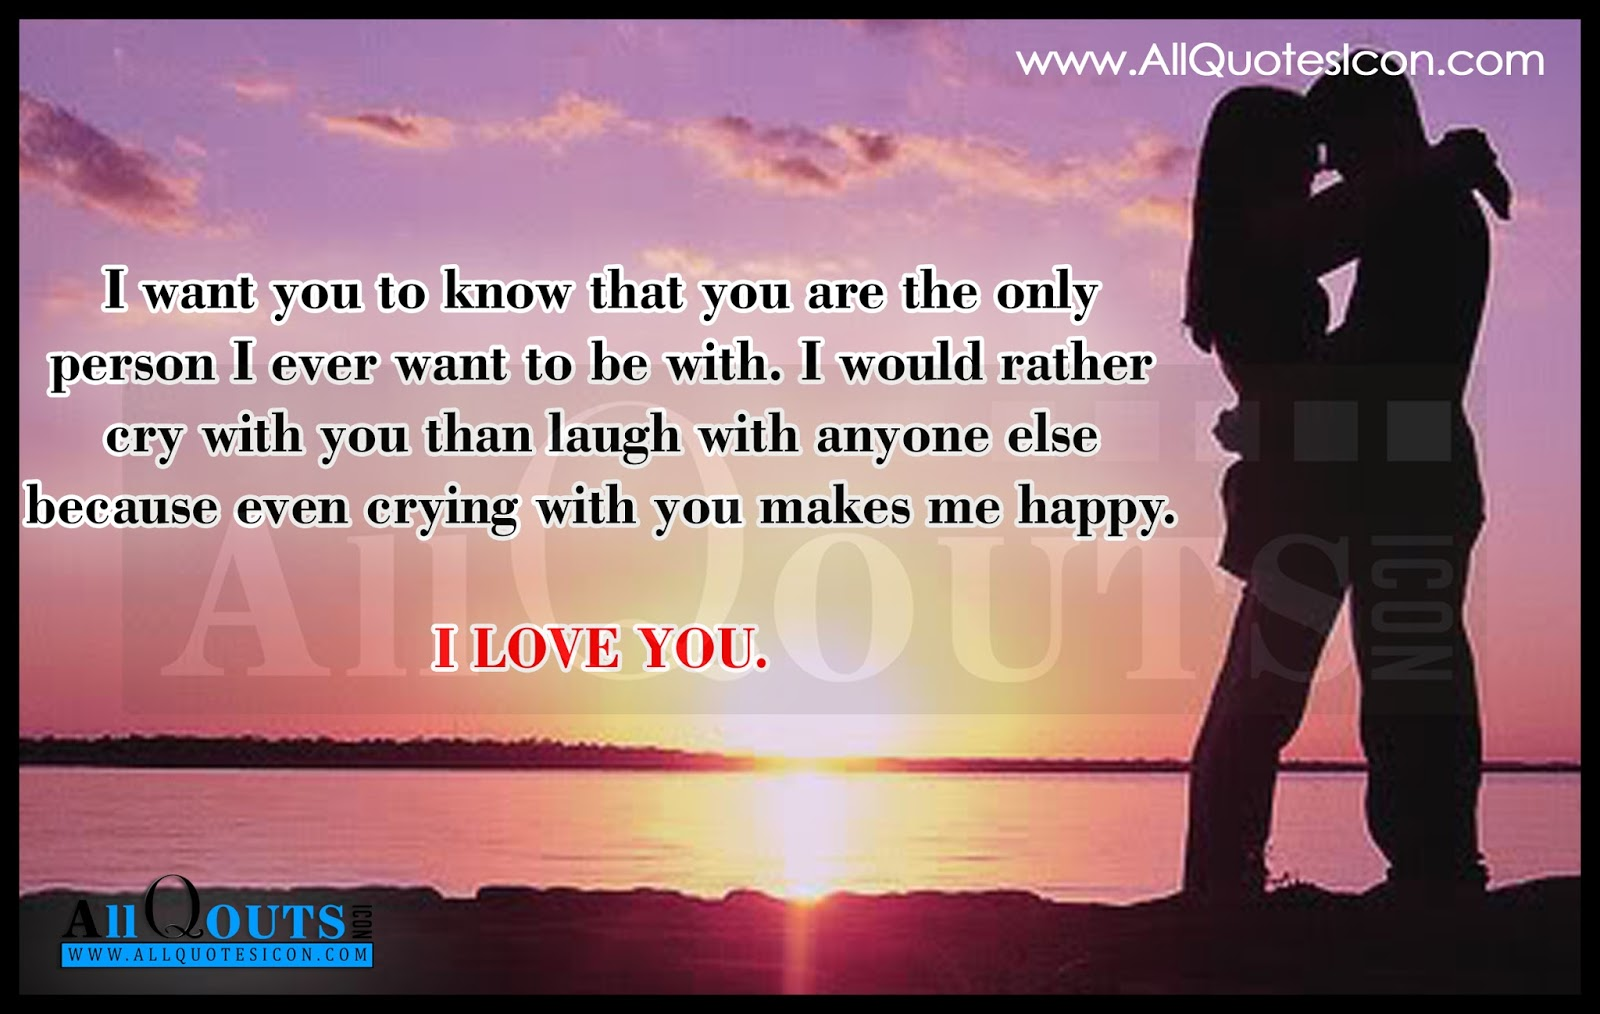 English Love Quotes Images Motivation Inspiration Thoughts - You Are Everything For Me - HD Wallpaper